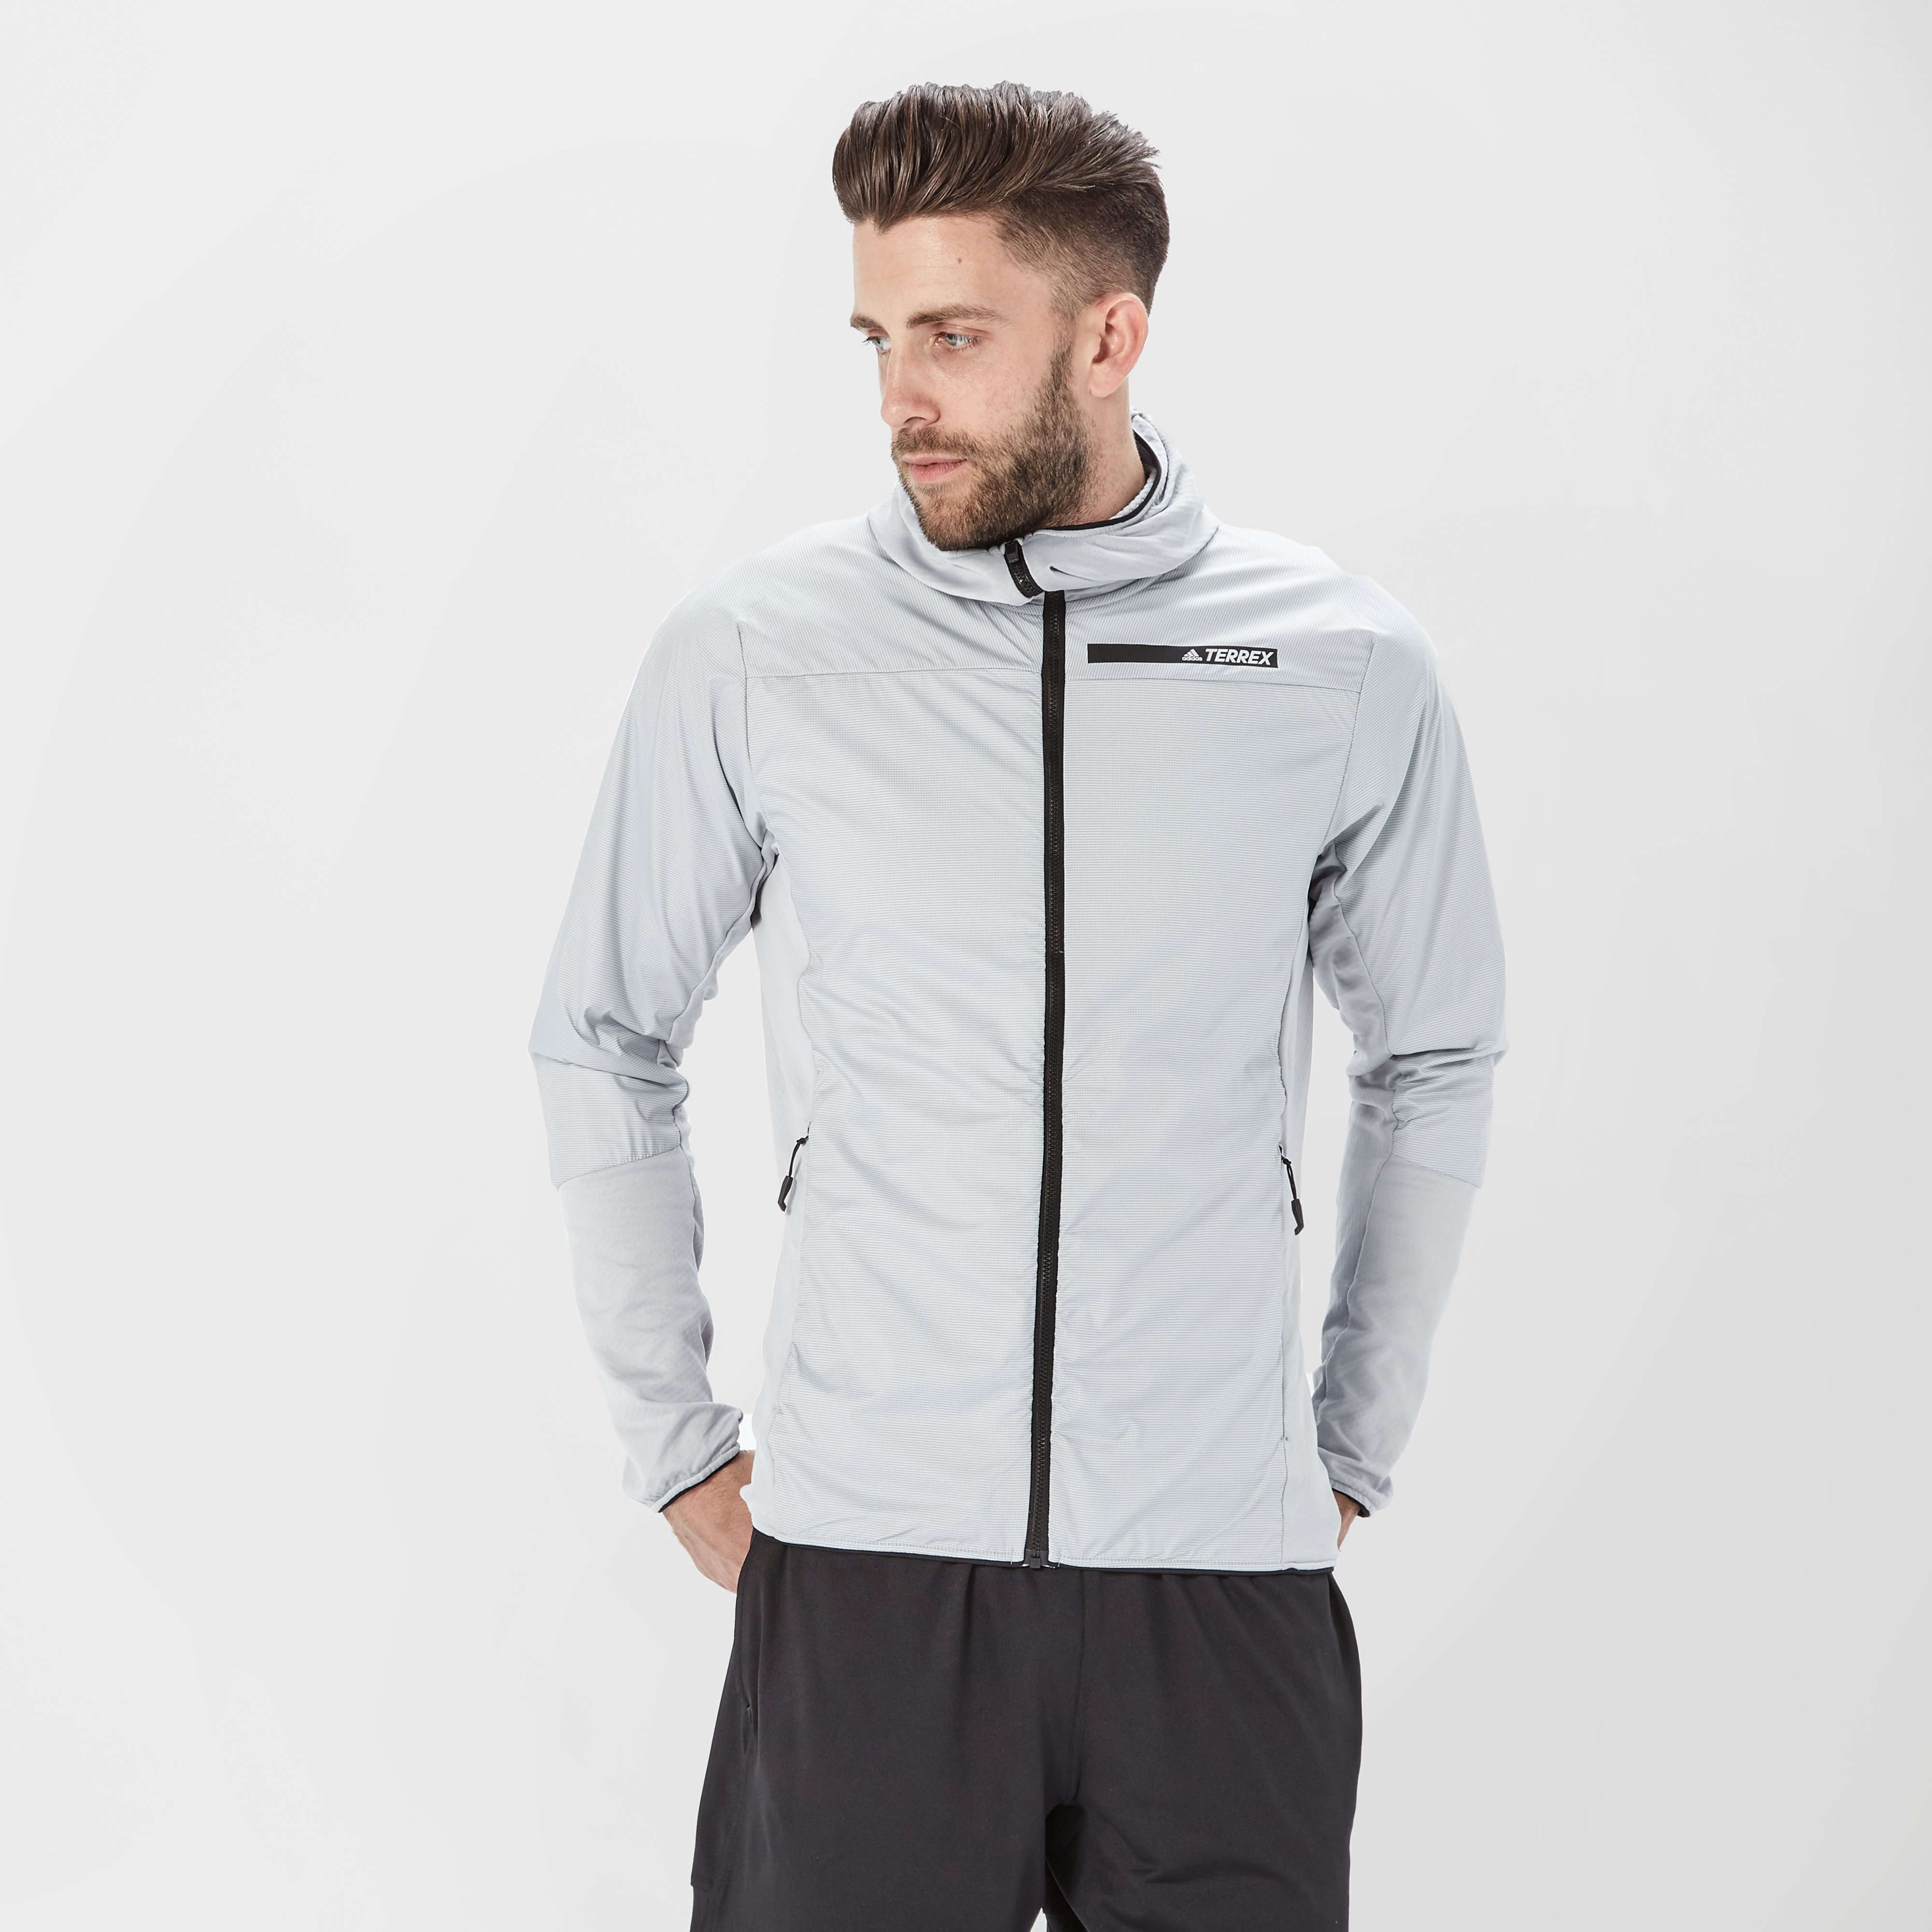 ADIDAS Men's Terrex  Sky Climb Insulated Jacket